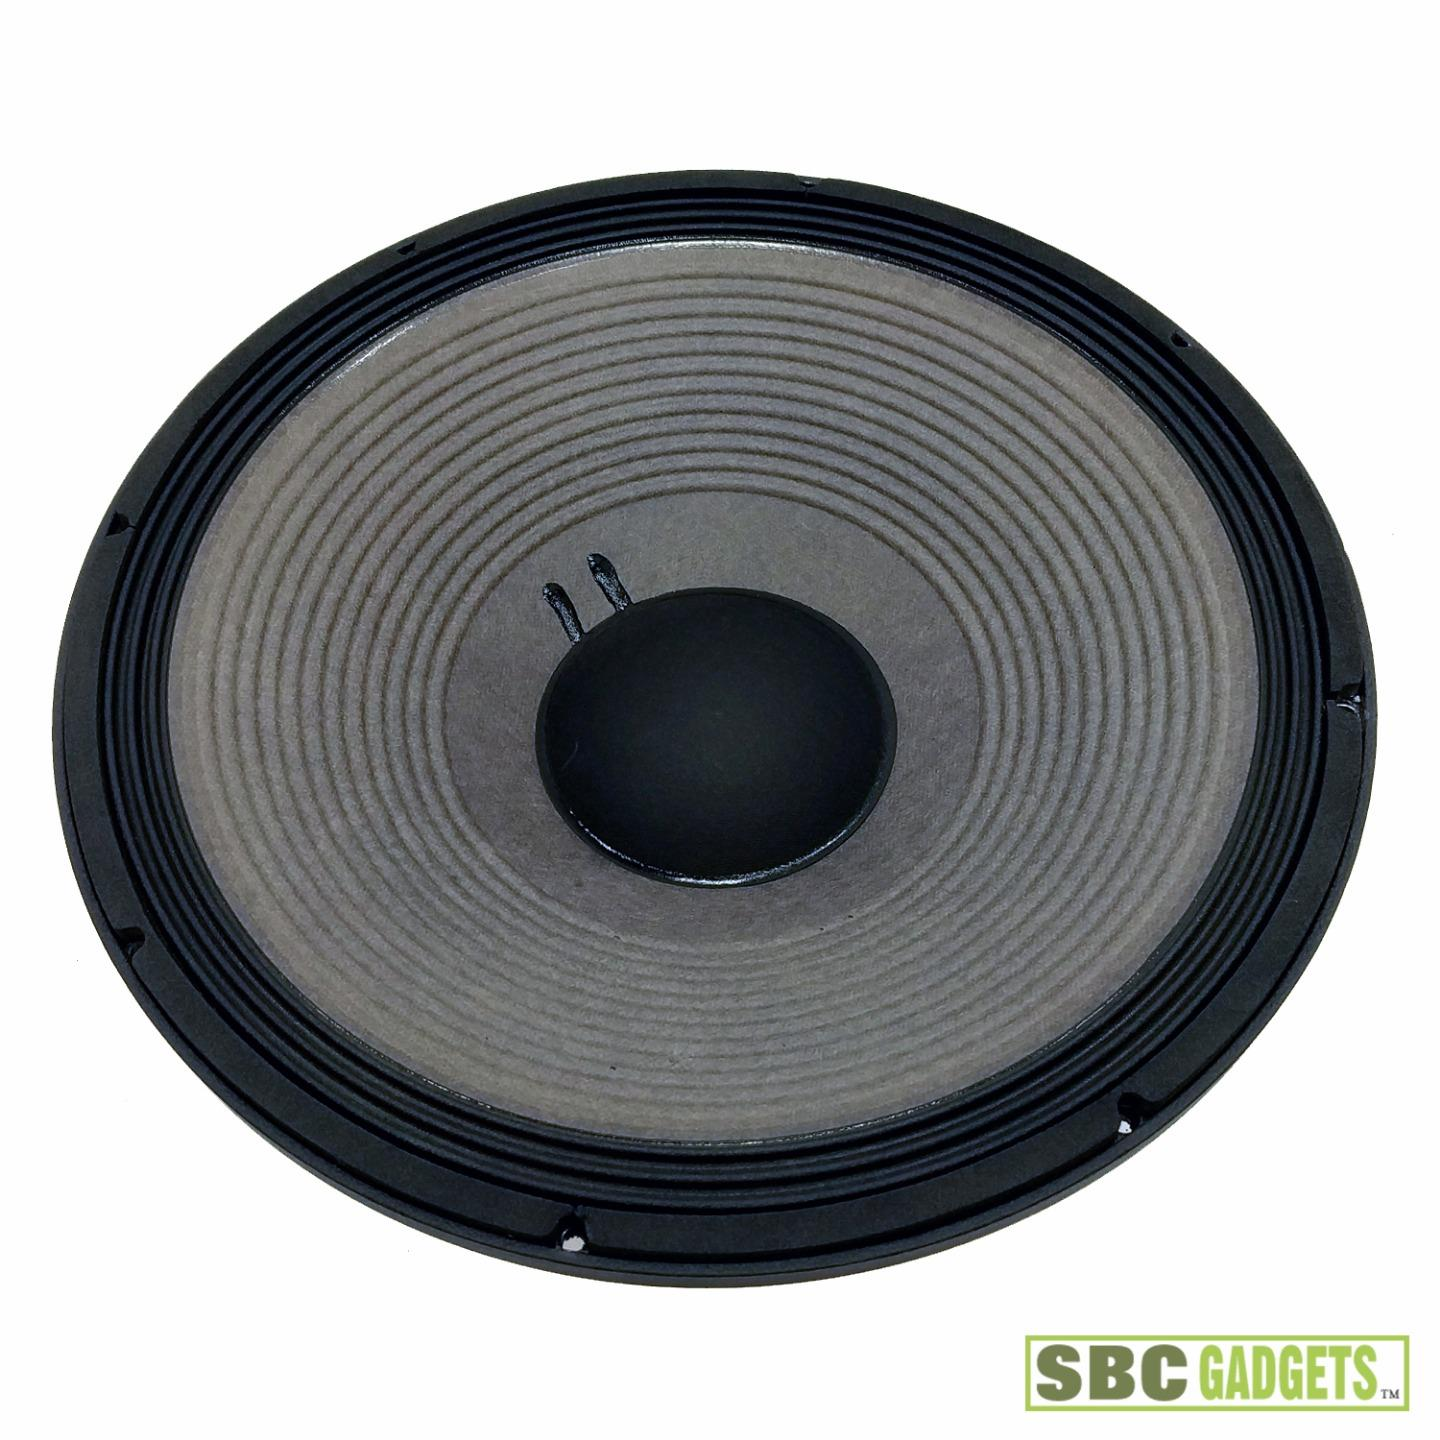 "Sub Speaker 8 Ohm Jbl 15"" Professional Woofer Subwoofer, 8 Ohms (model"